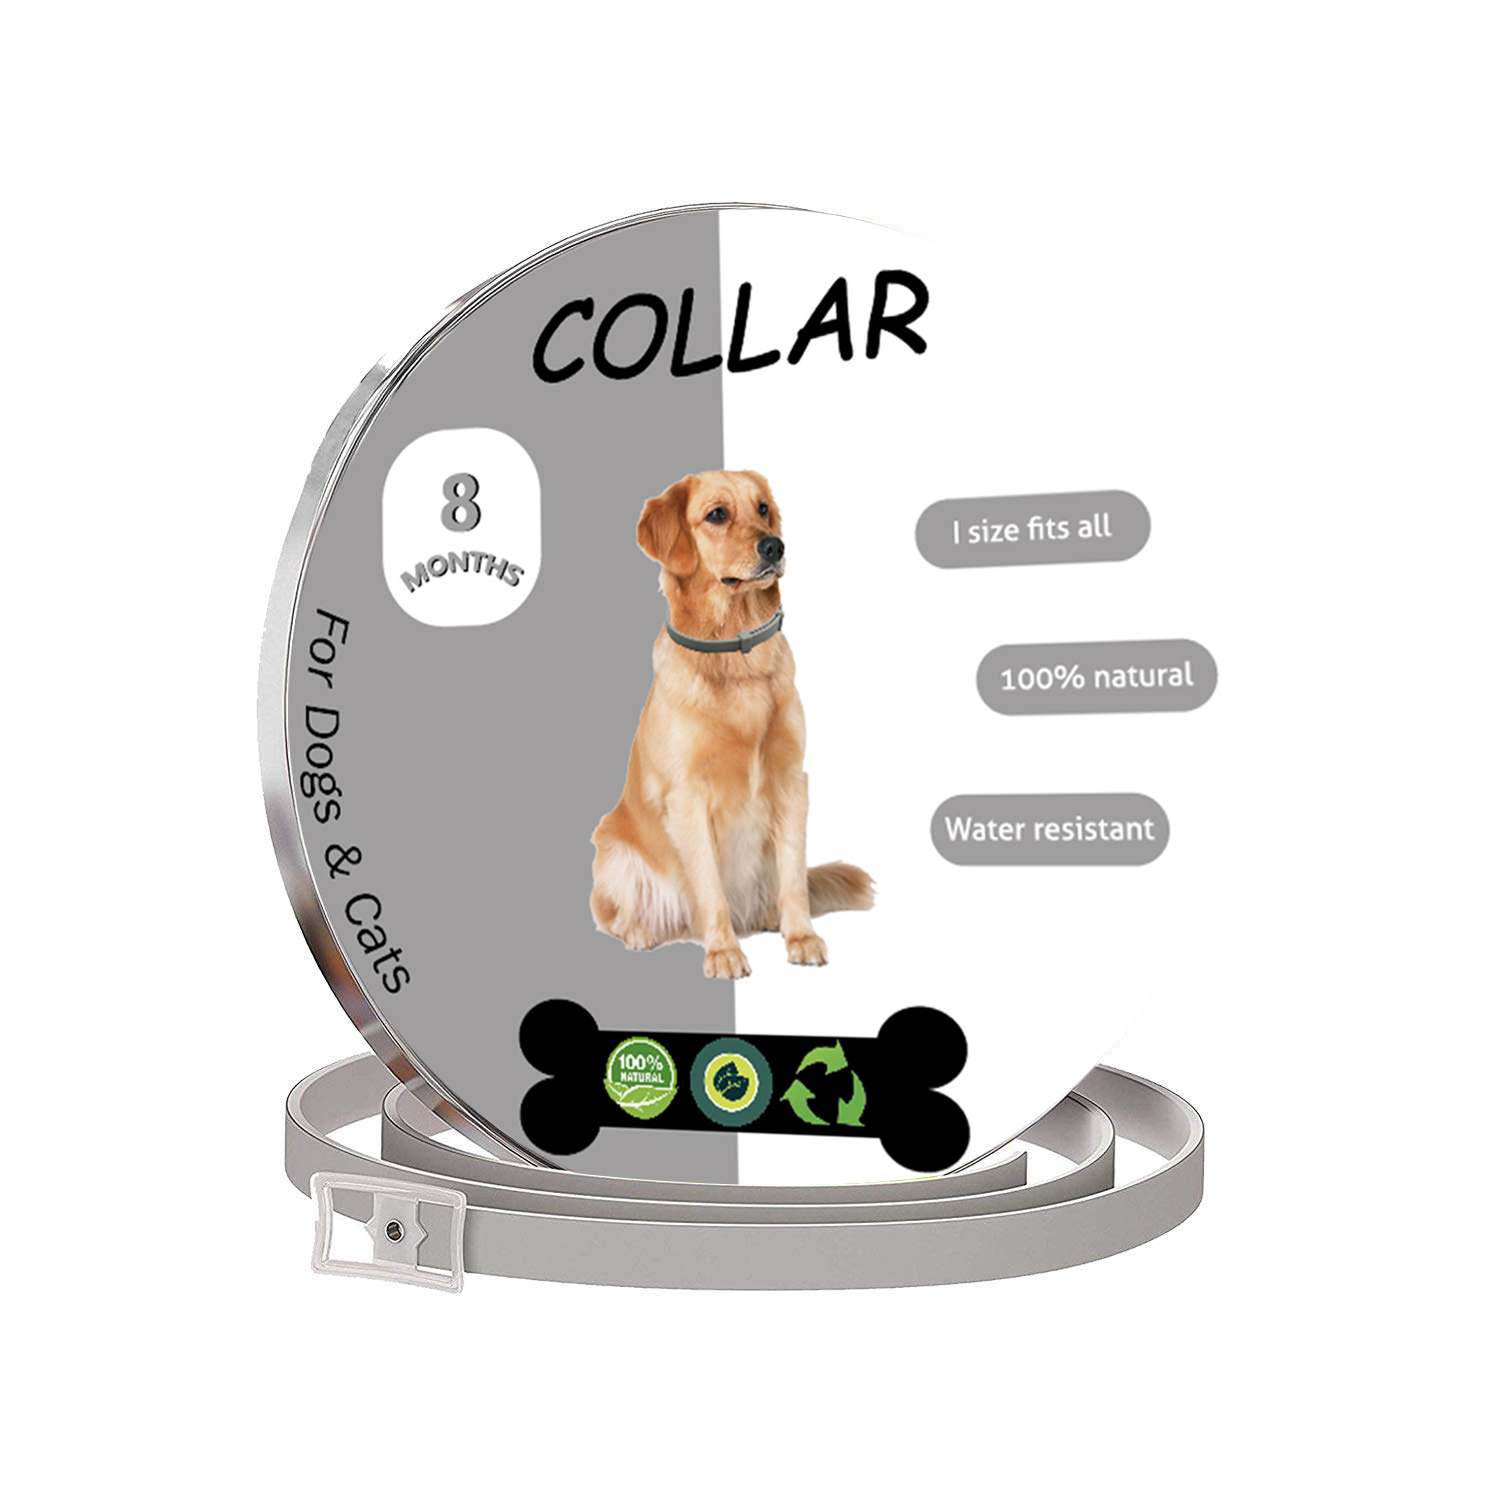 Custom Logo 8 Month Protection Pet <strong>Dog</strong> Anti Eliminating Flea And Tick Collar For <strong>Dogs</strong>